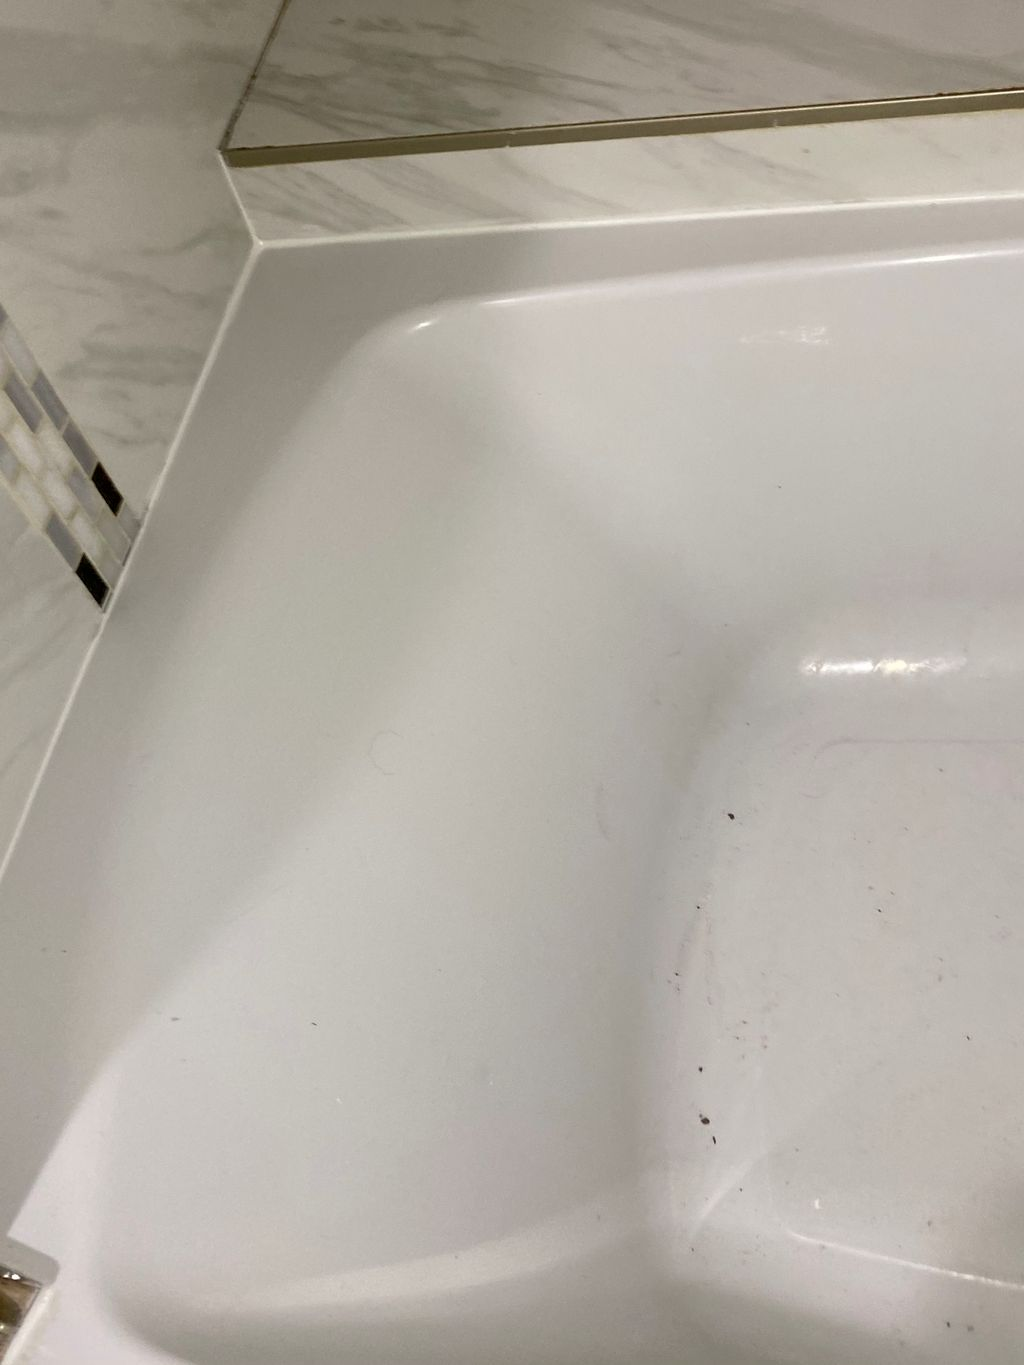 Bathtub re-caulking